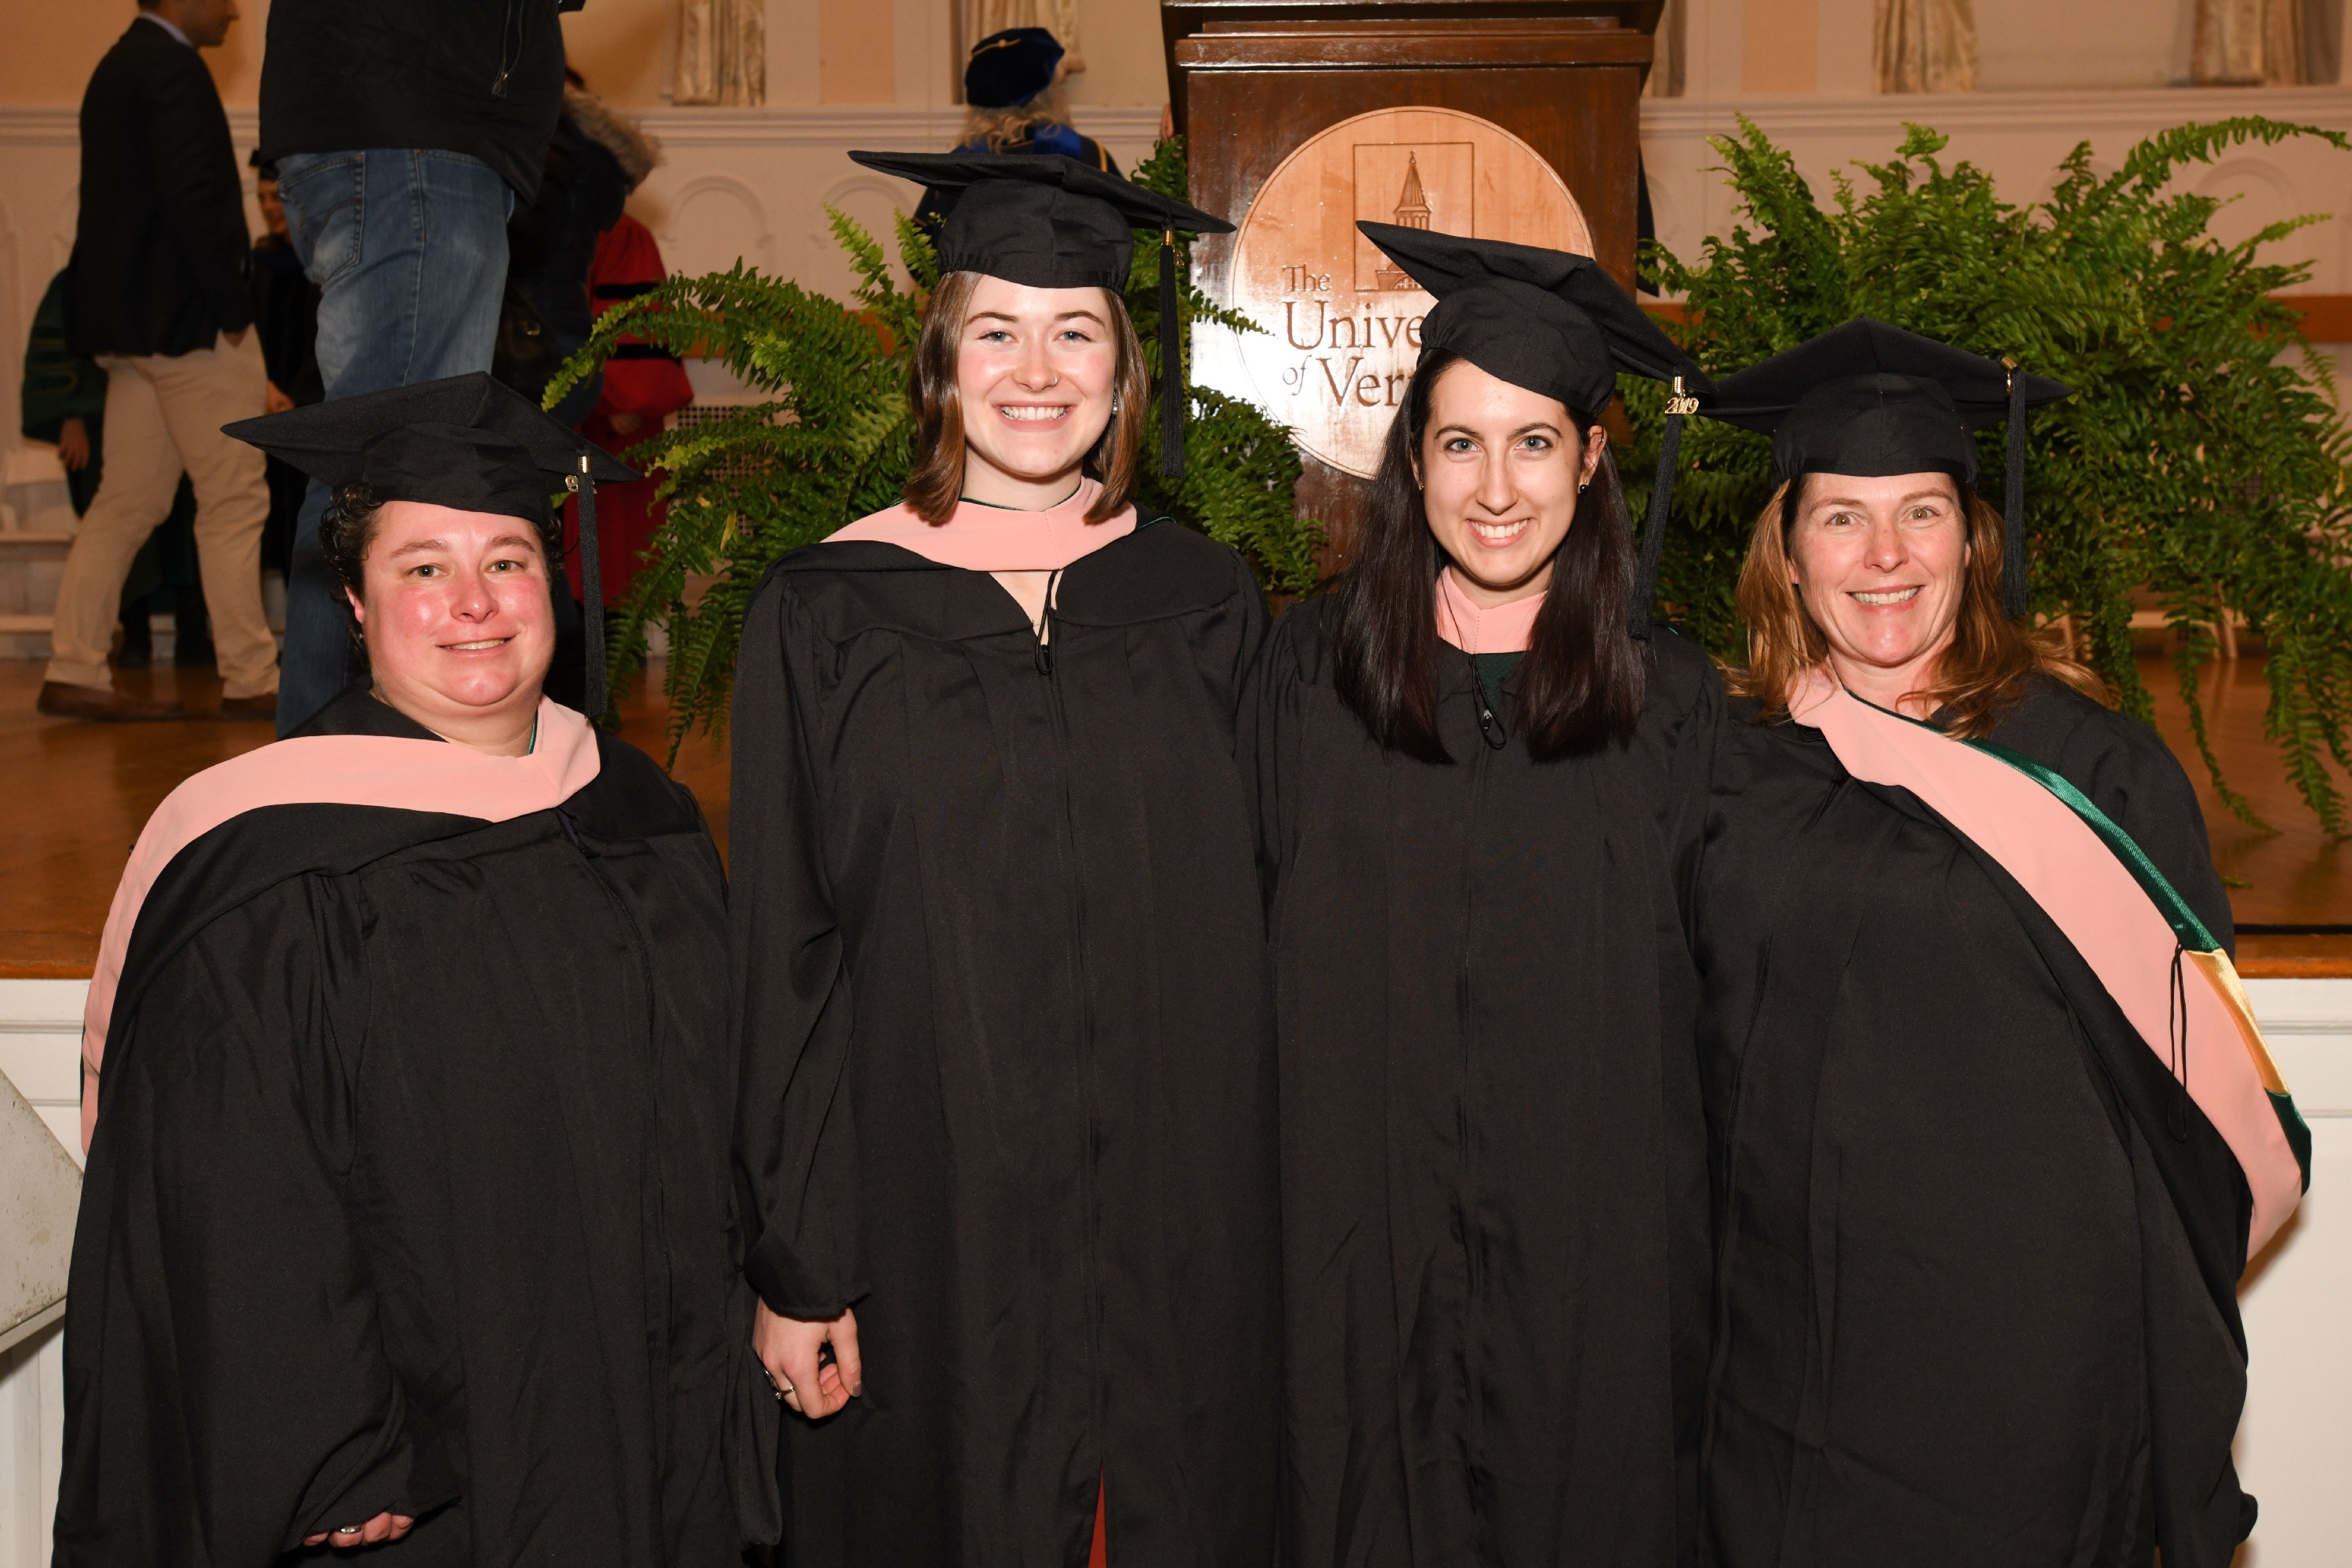 Four UVM Larner College of Medicine Master of Public Health Graduates Pose at UVM Graduate Hooding Ceremony on December 11, 2019